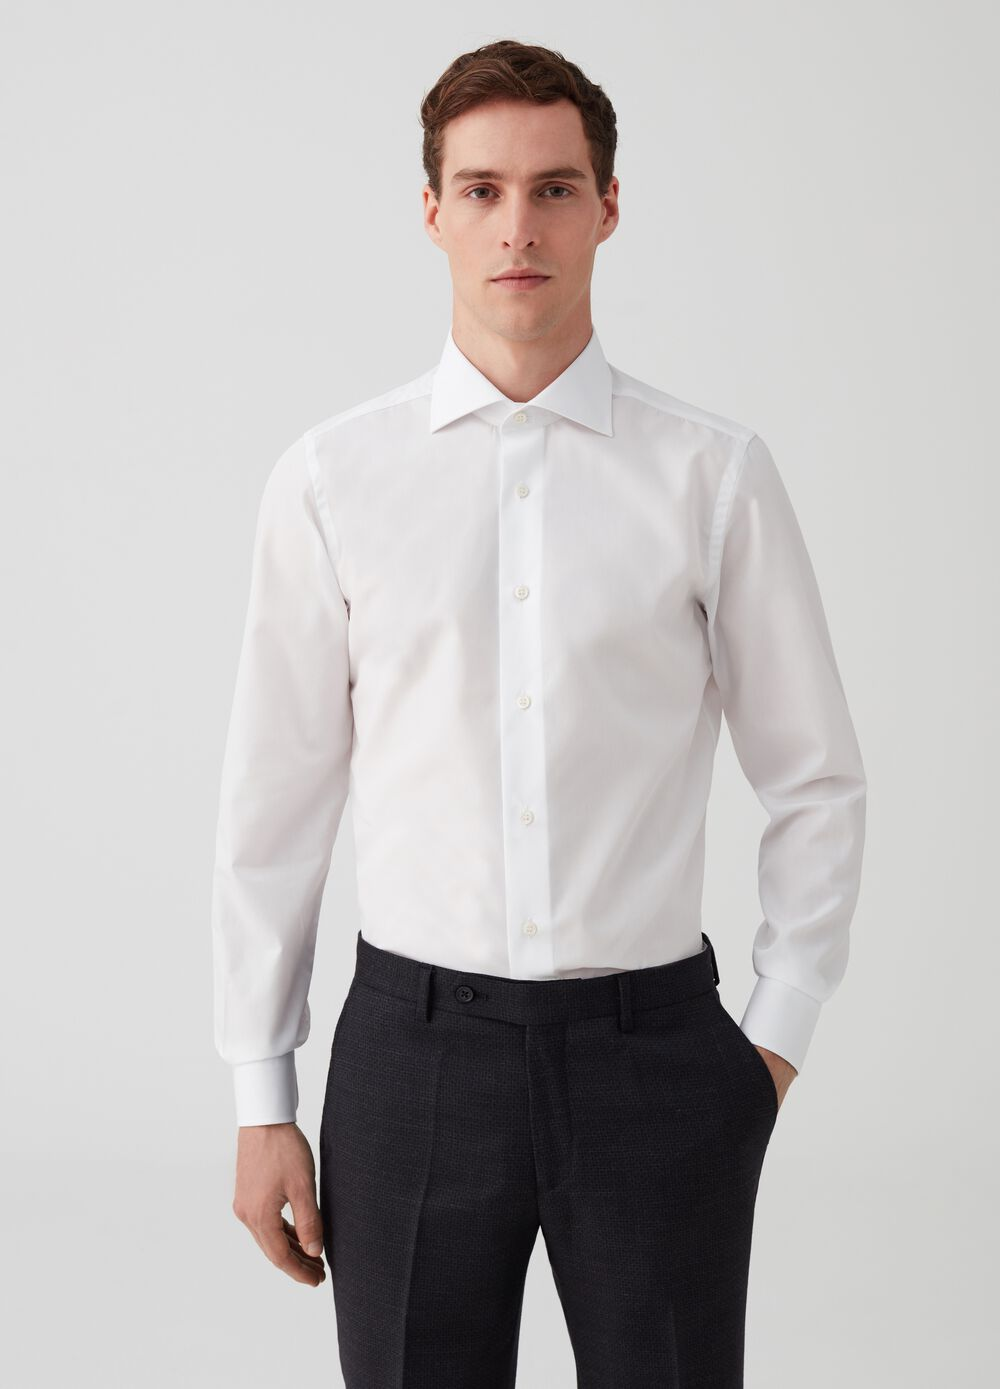 100% cotton shirt with cutaway collar